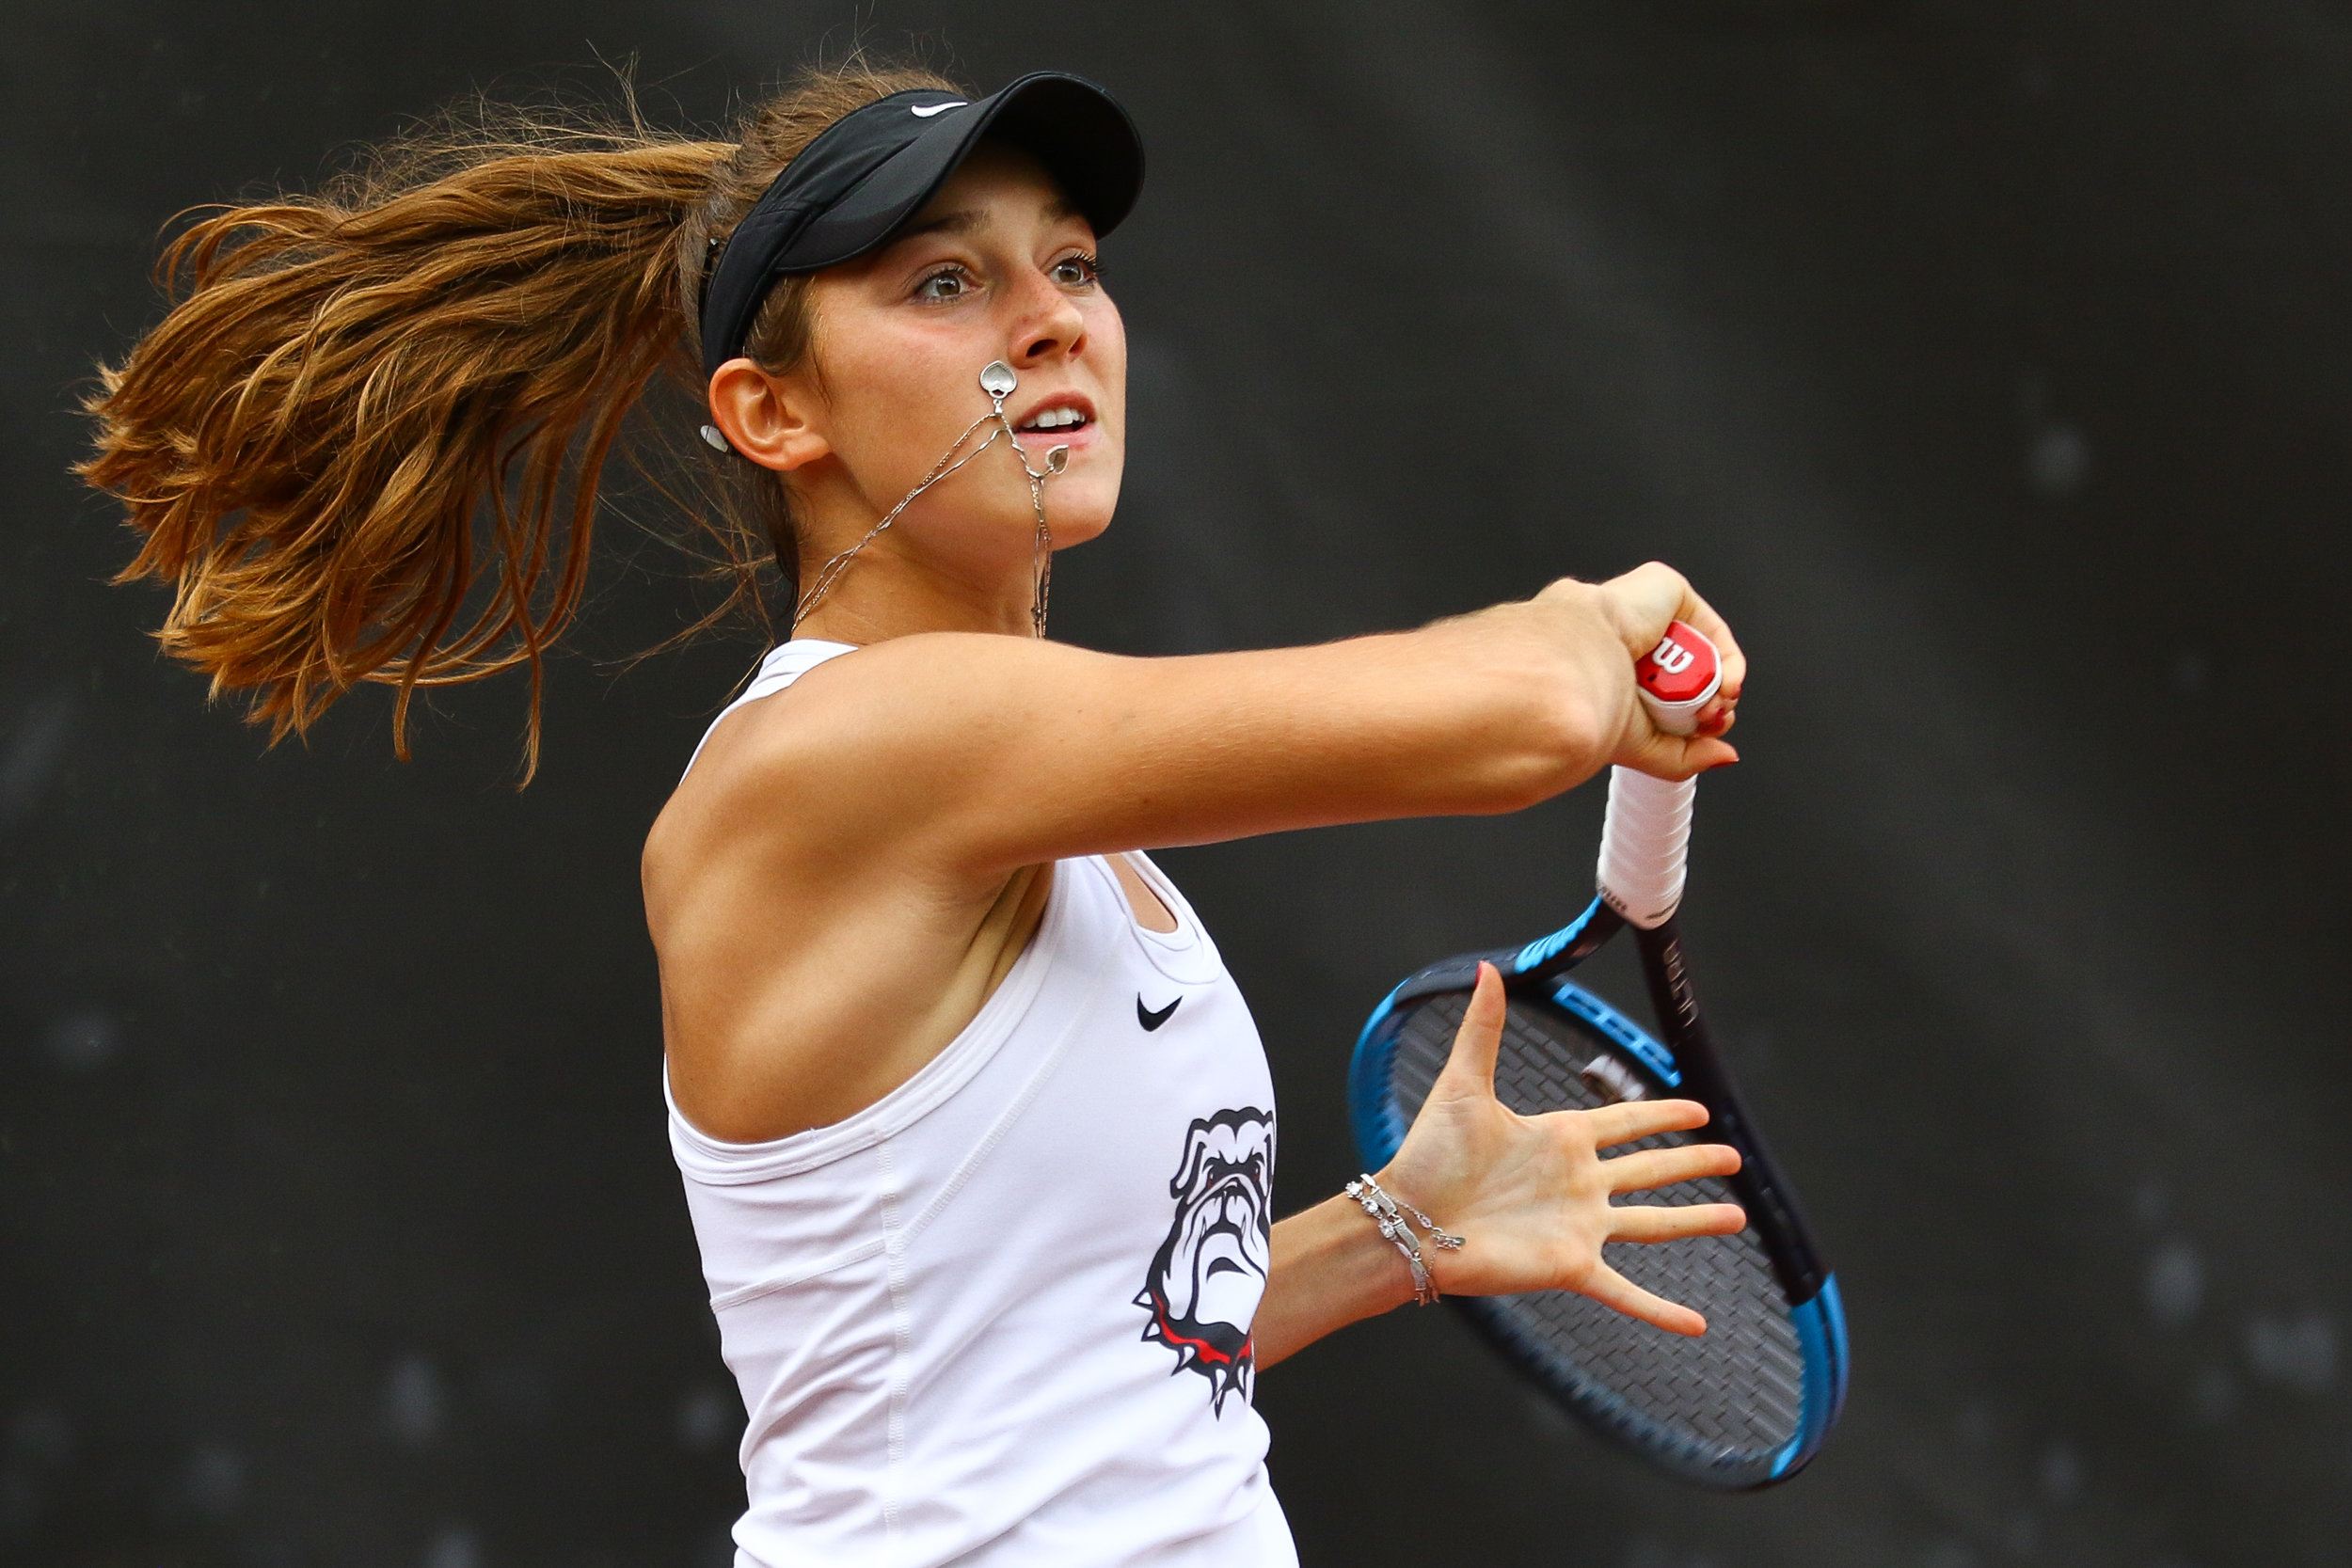 Georgia's Katarina Jokic's necklace hits her cheek as she returns the ball during a singles match against Kentucky in Athens, Ga., on Friday, Apr. 12, 2019. Jokic's grandmother gifted her the chain, while her mother supplied the charmed heart. She wears it to every match.